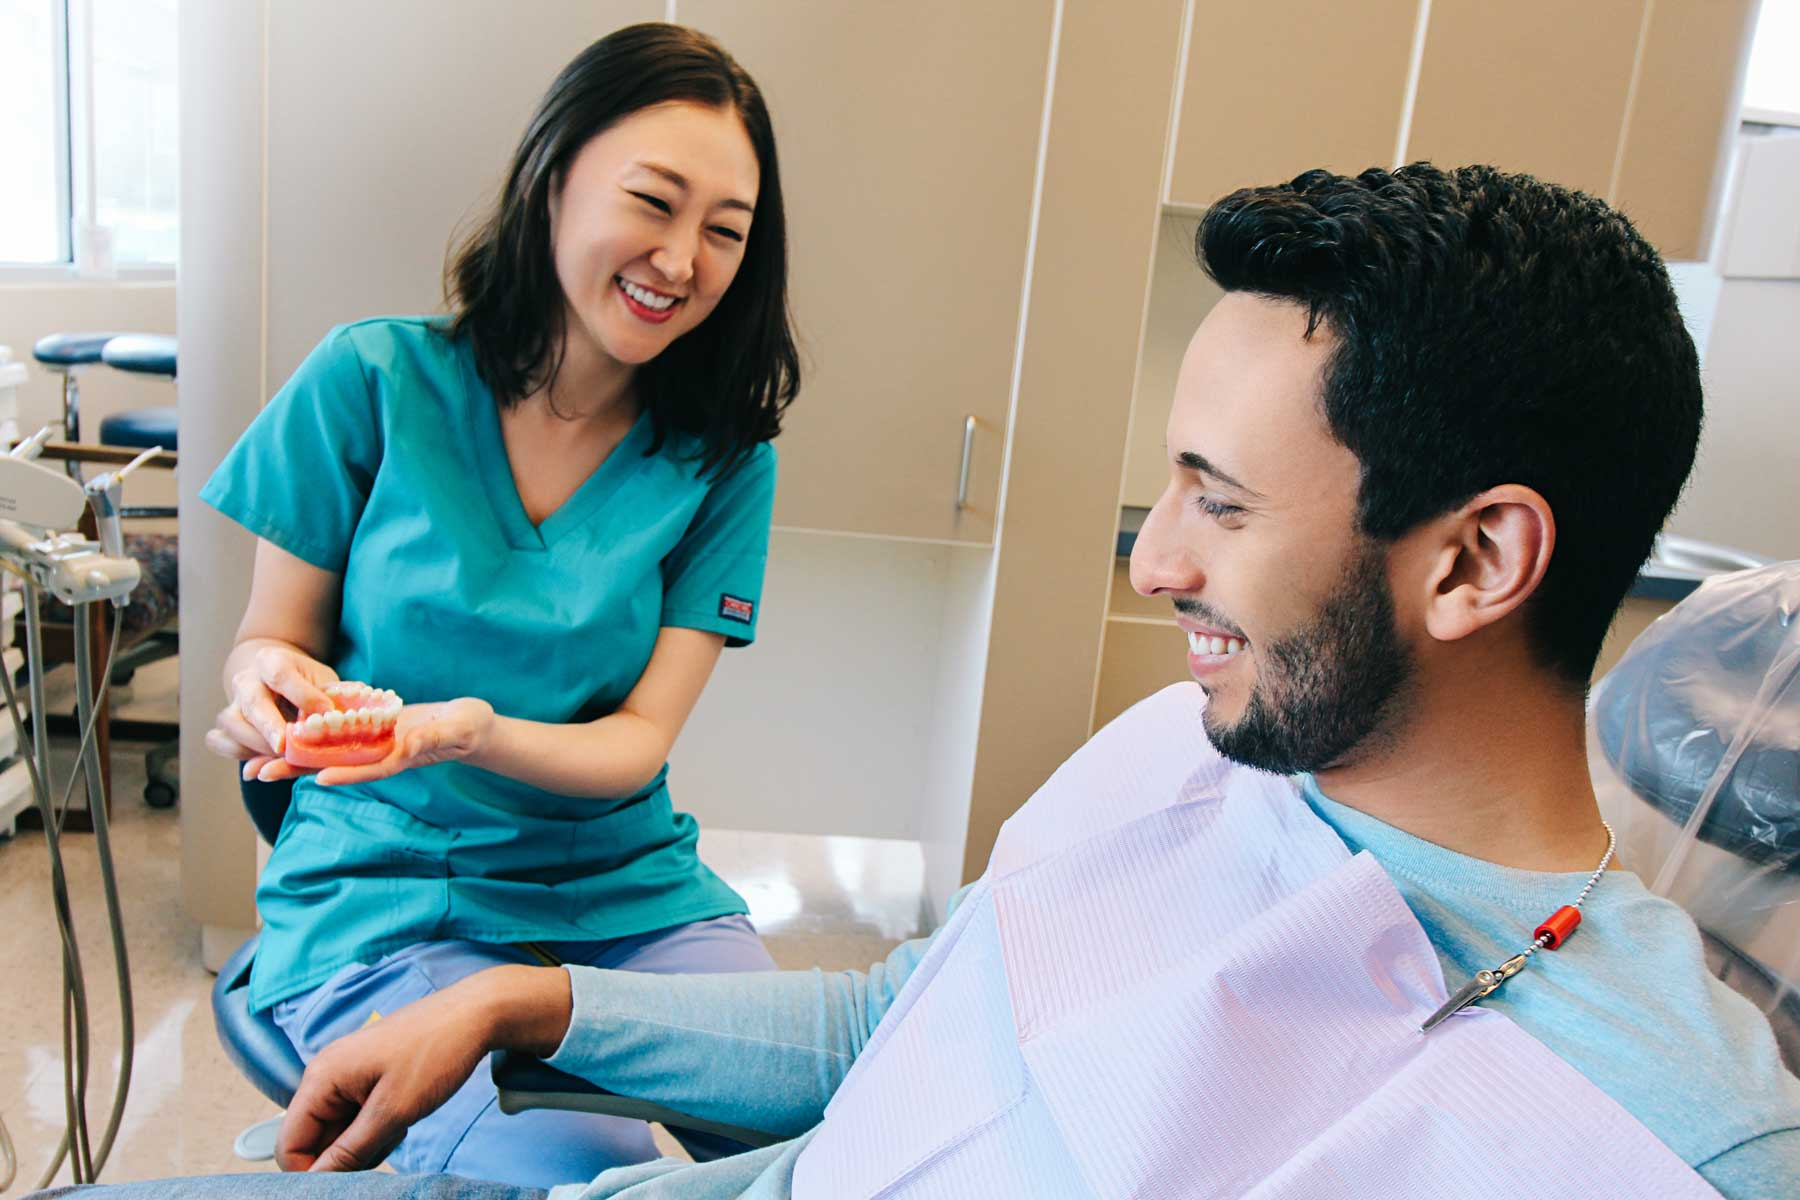 Fall in love with your smile - We care for your oral health as much as you do. Stop by at our clinic and bring the family for a full range of services and procedures.